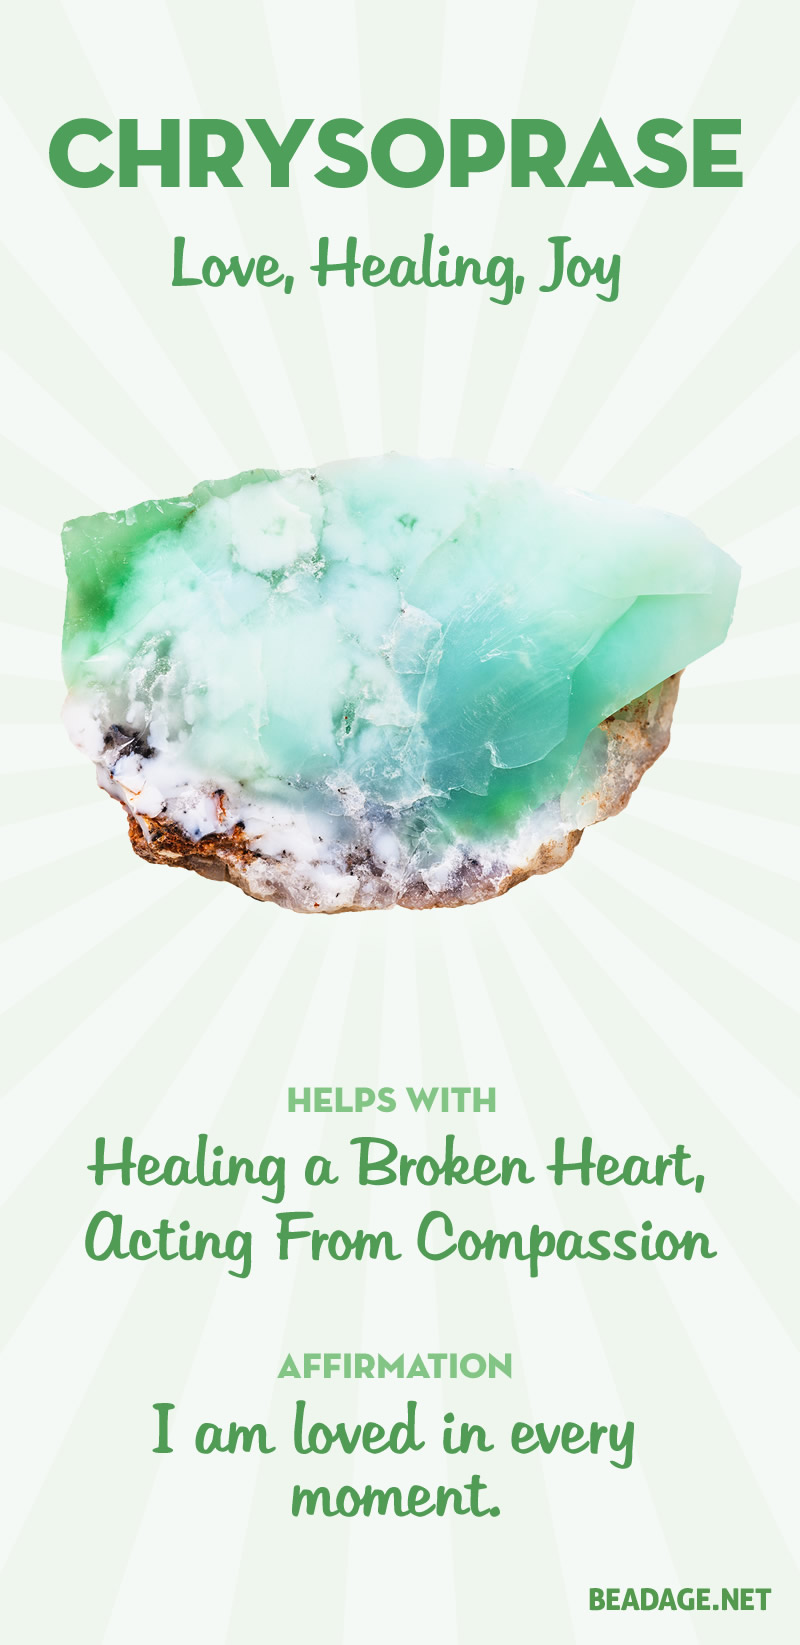 Chrysoprase Meaning & Healing Properties | Learn gemstone meanings, gemstone information, crystal healing, stone powers, chakra stones, & chrysoprase benefits. Get some positive energy & vibes! #gemstones #crystals #crystalhealing #beadage  #chrysoprase